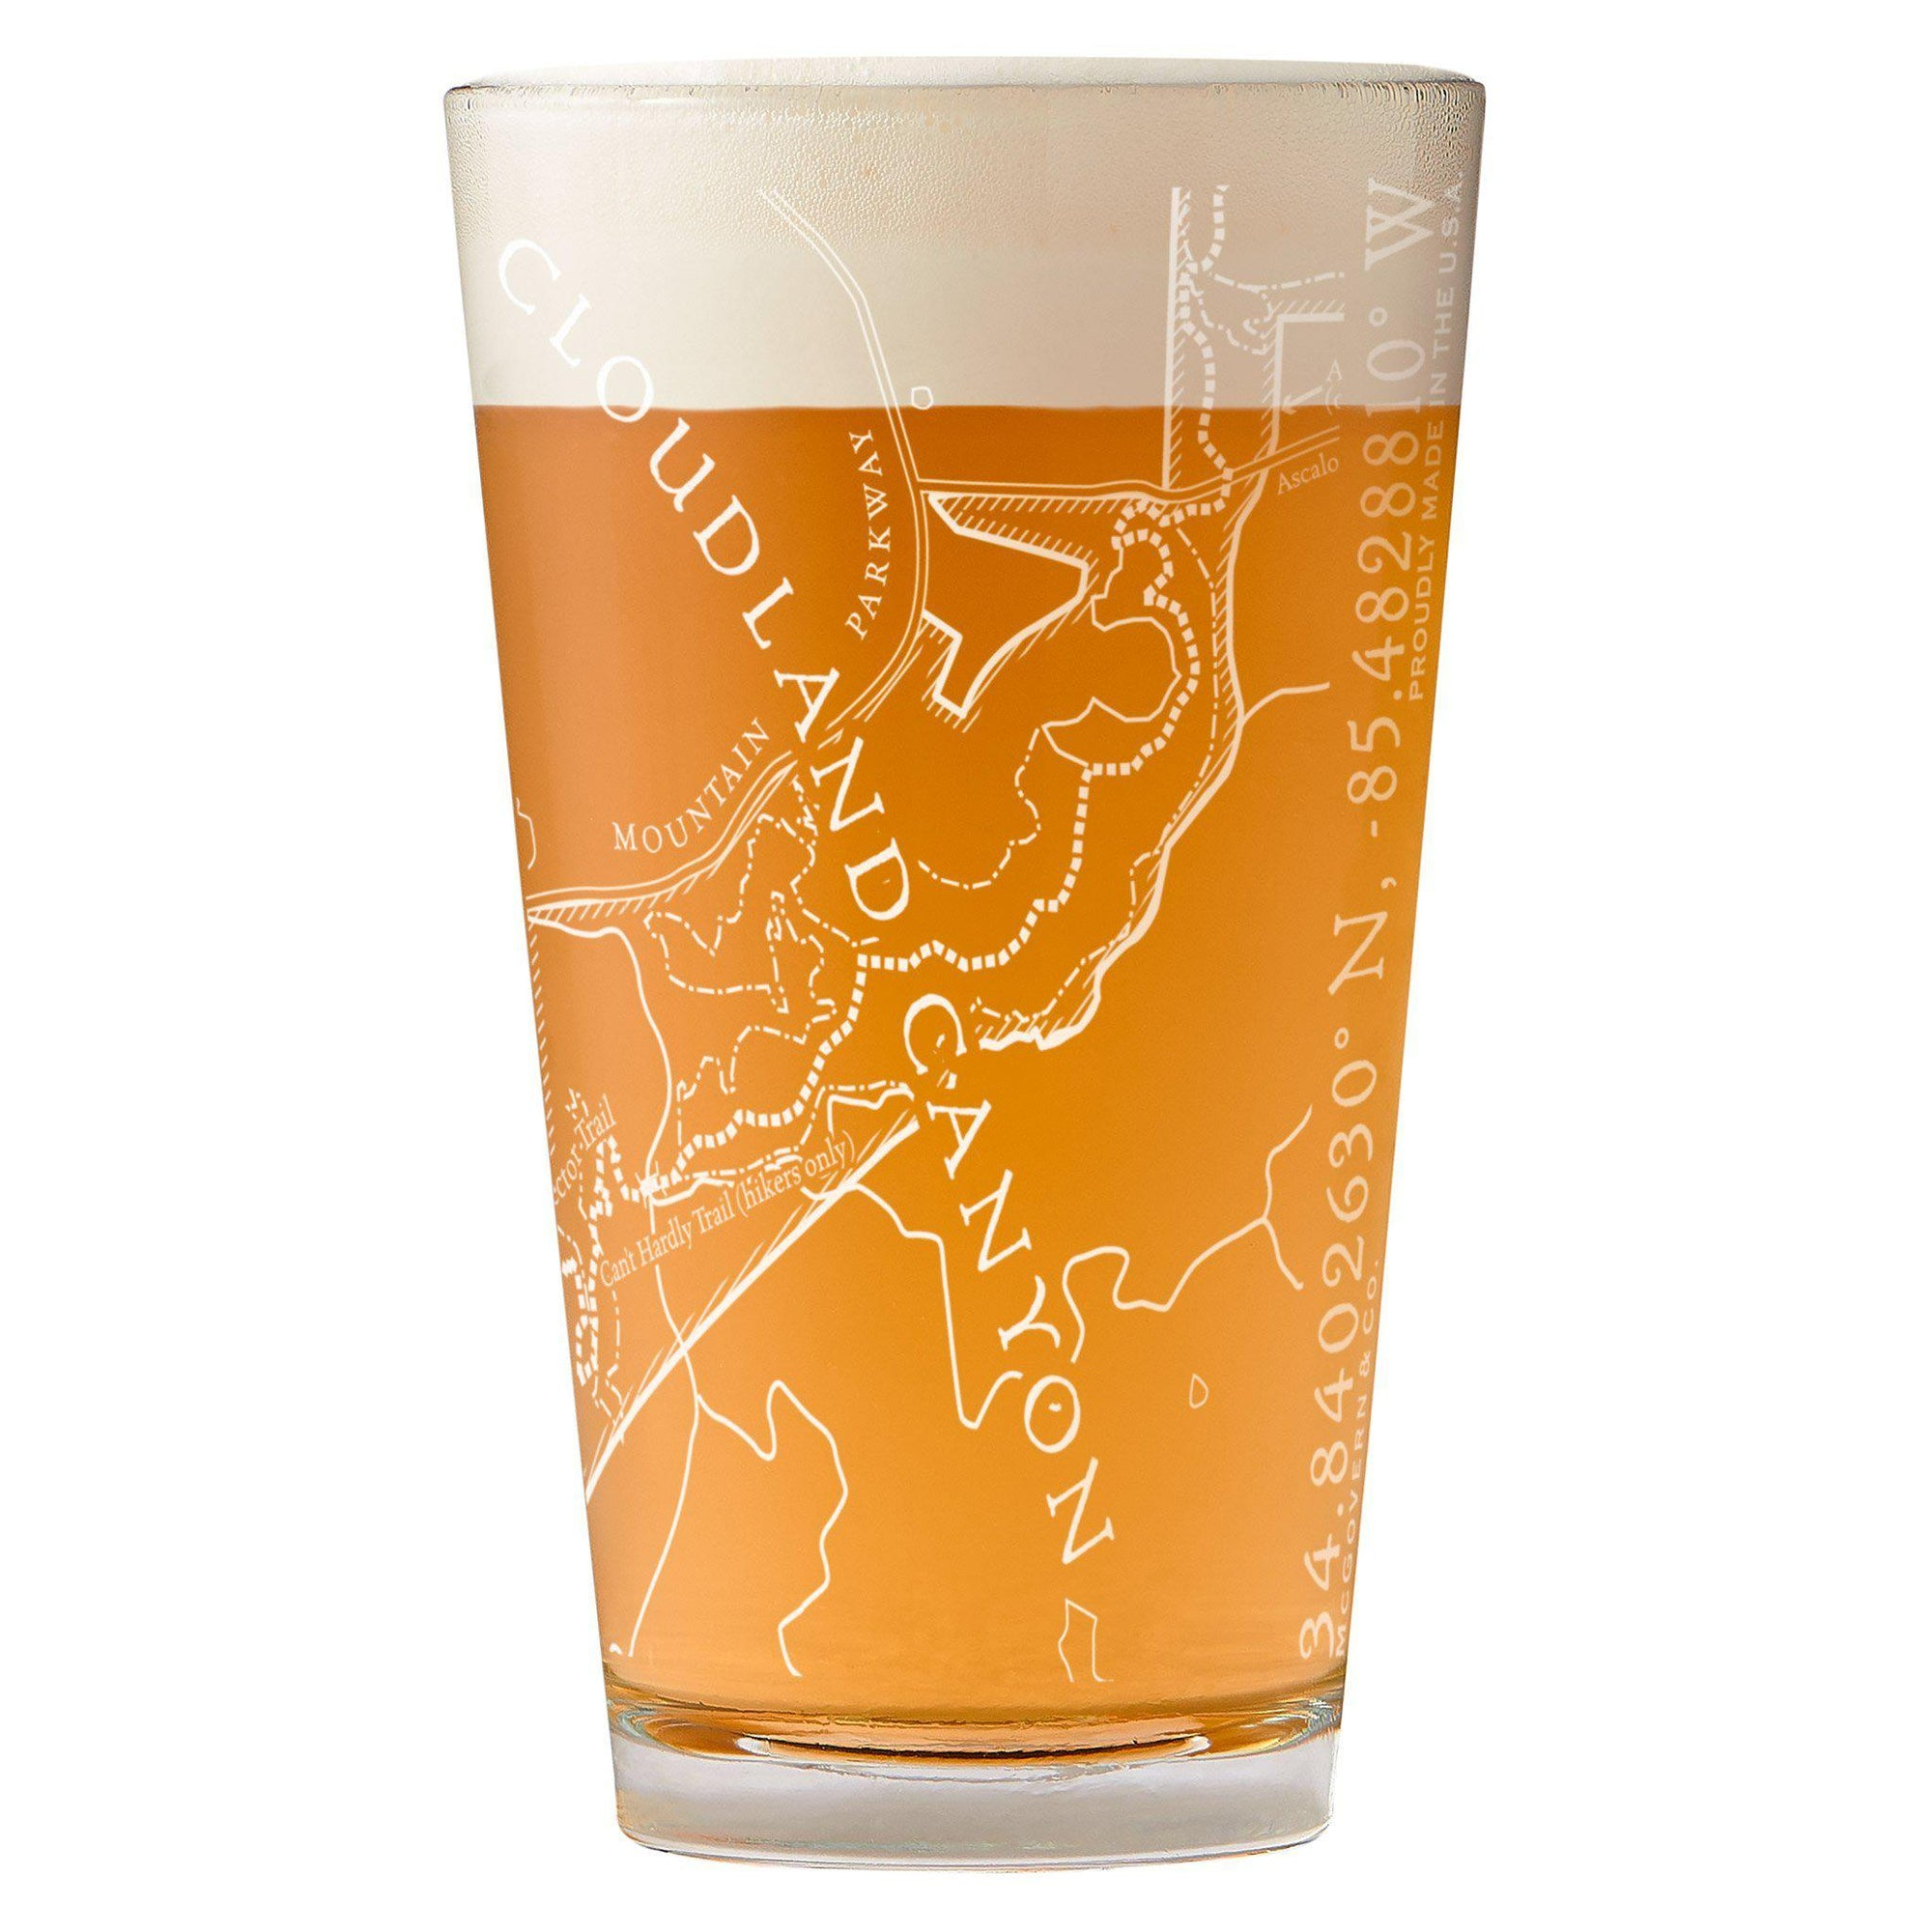 Cloudland Canyon State Park Map Pint